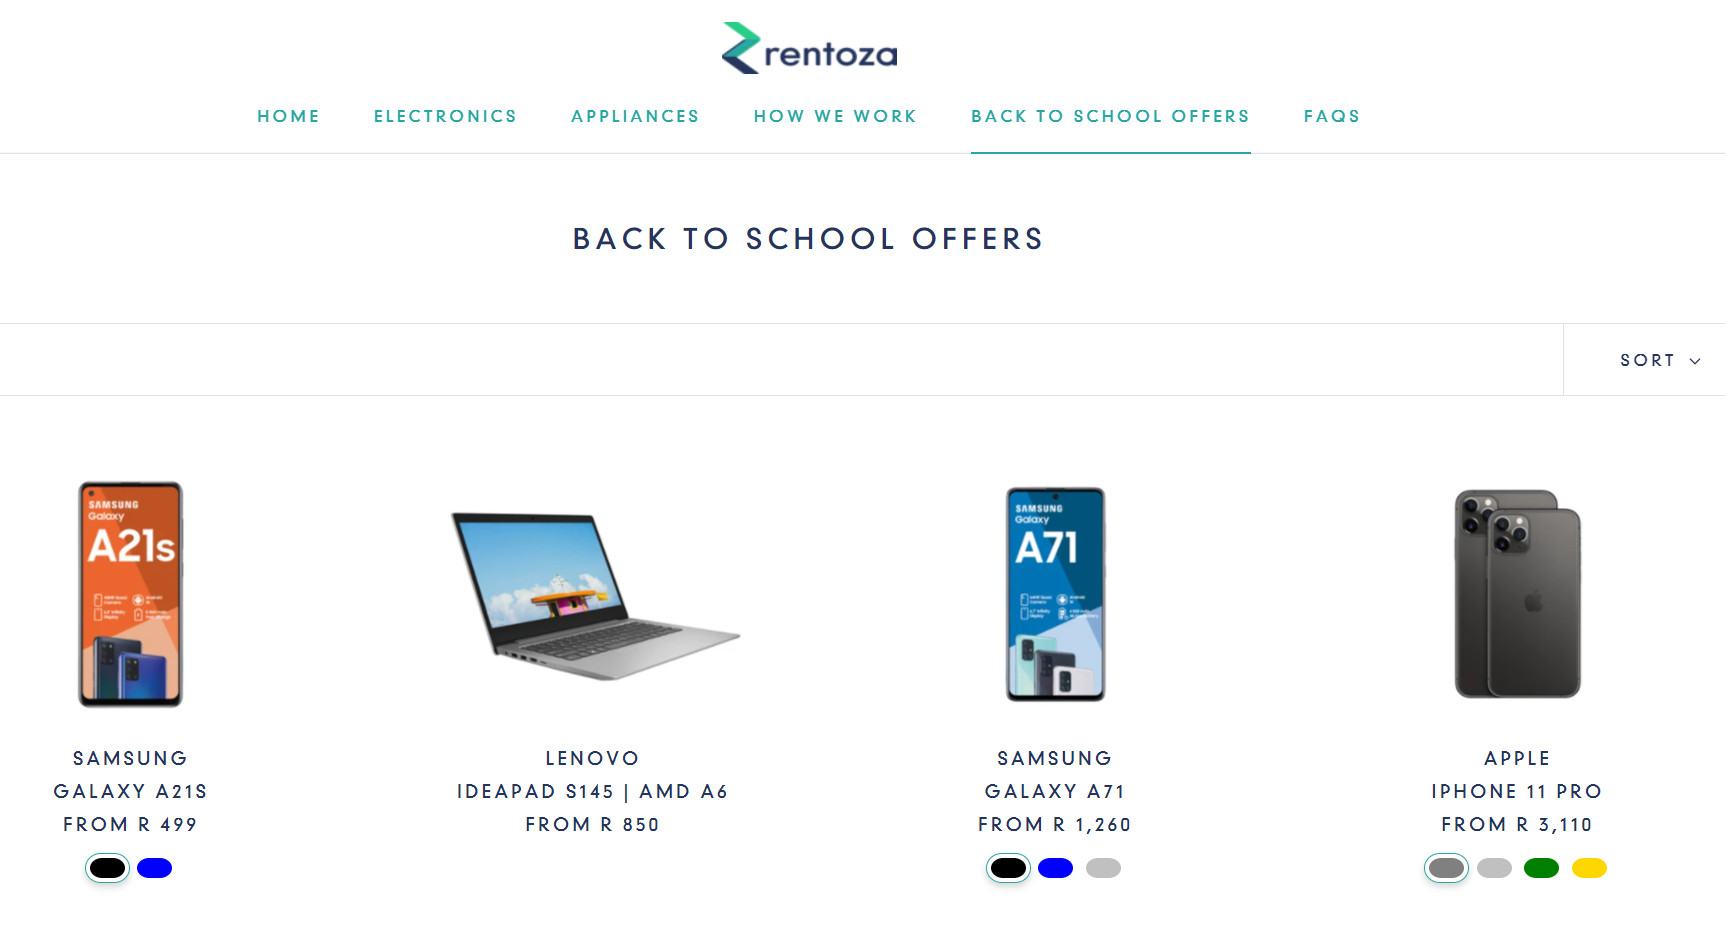 Rentoza back to school deals